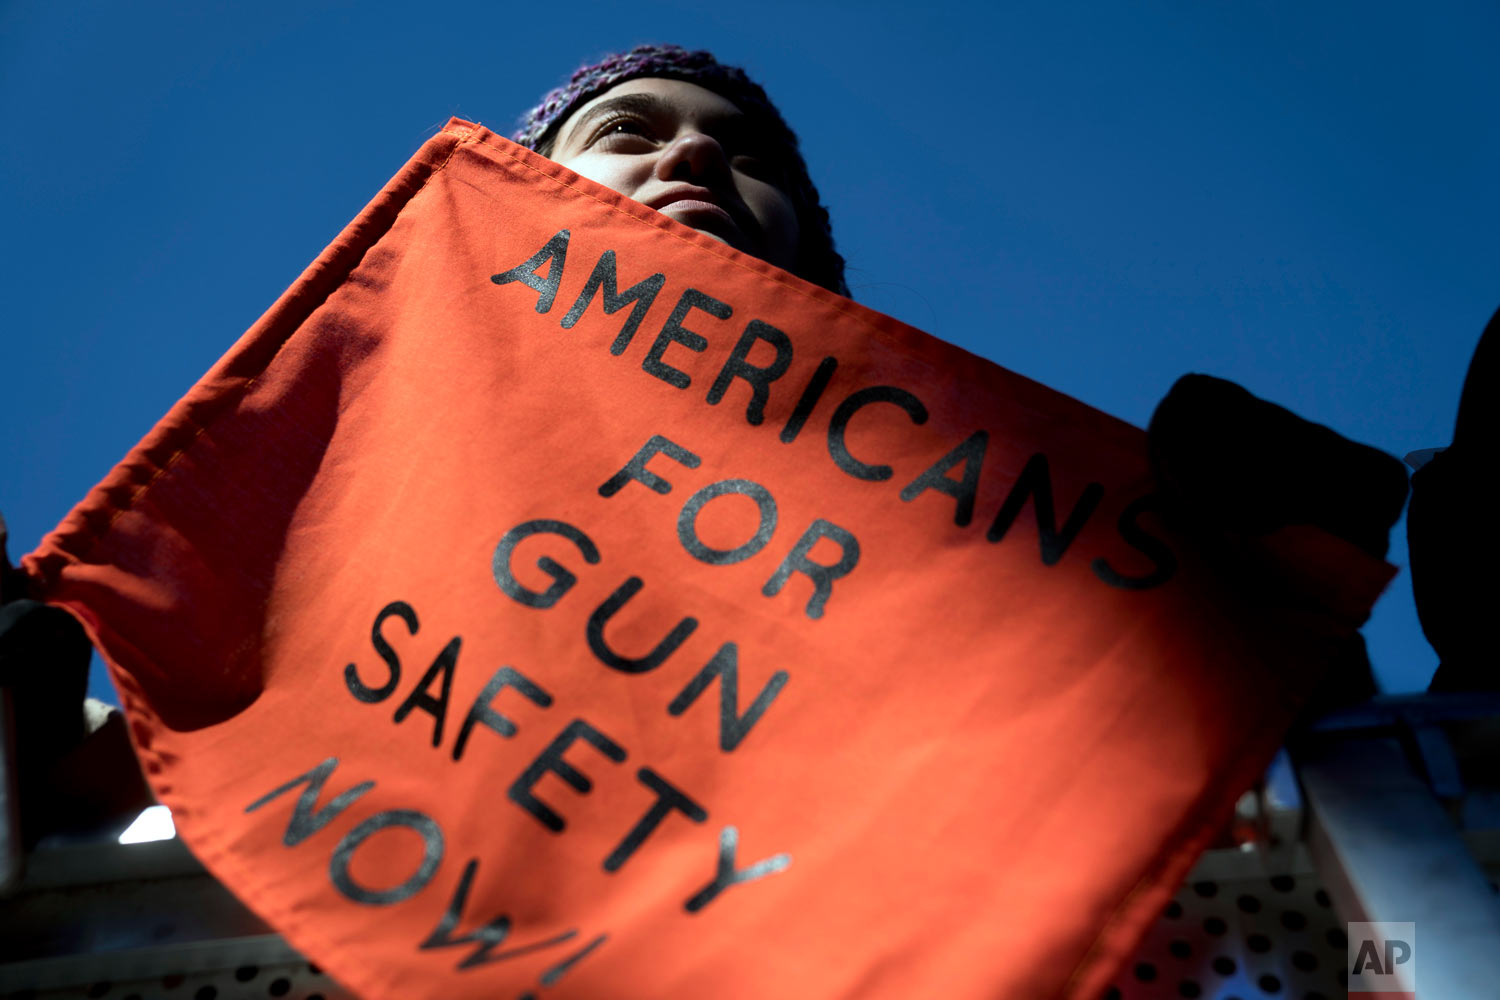 """Isabel White of Parkland, Fla., holds a sign that reads """"Americans for Gun Safety Now!"""" during the """"March for Our Lives"""" rally in support of gun control in Washington, Saturday, March 24, 2018. (AP Photo/Andrew Harnik)"""